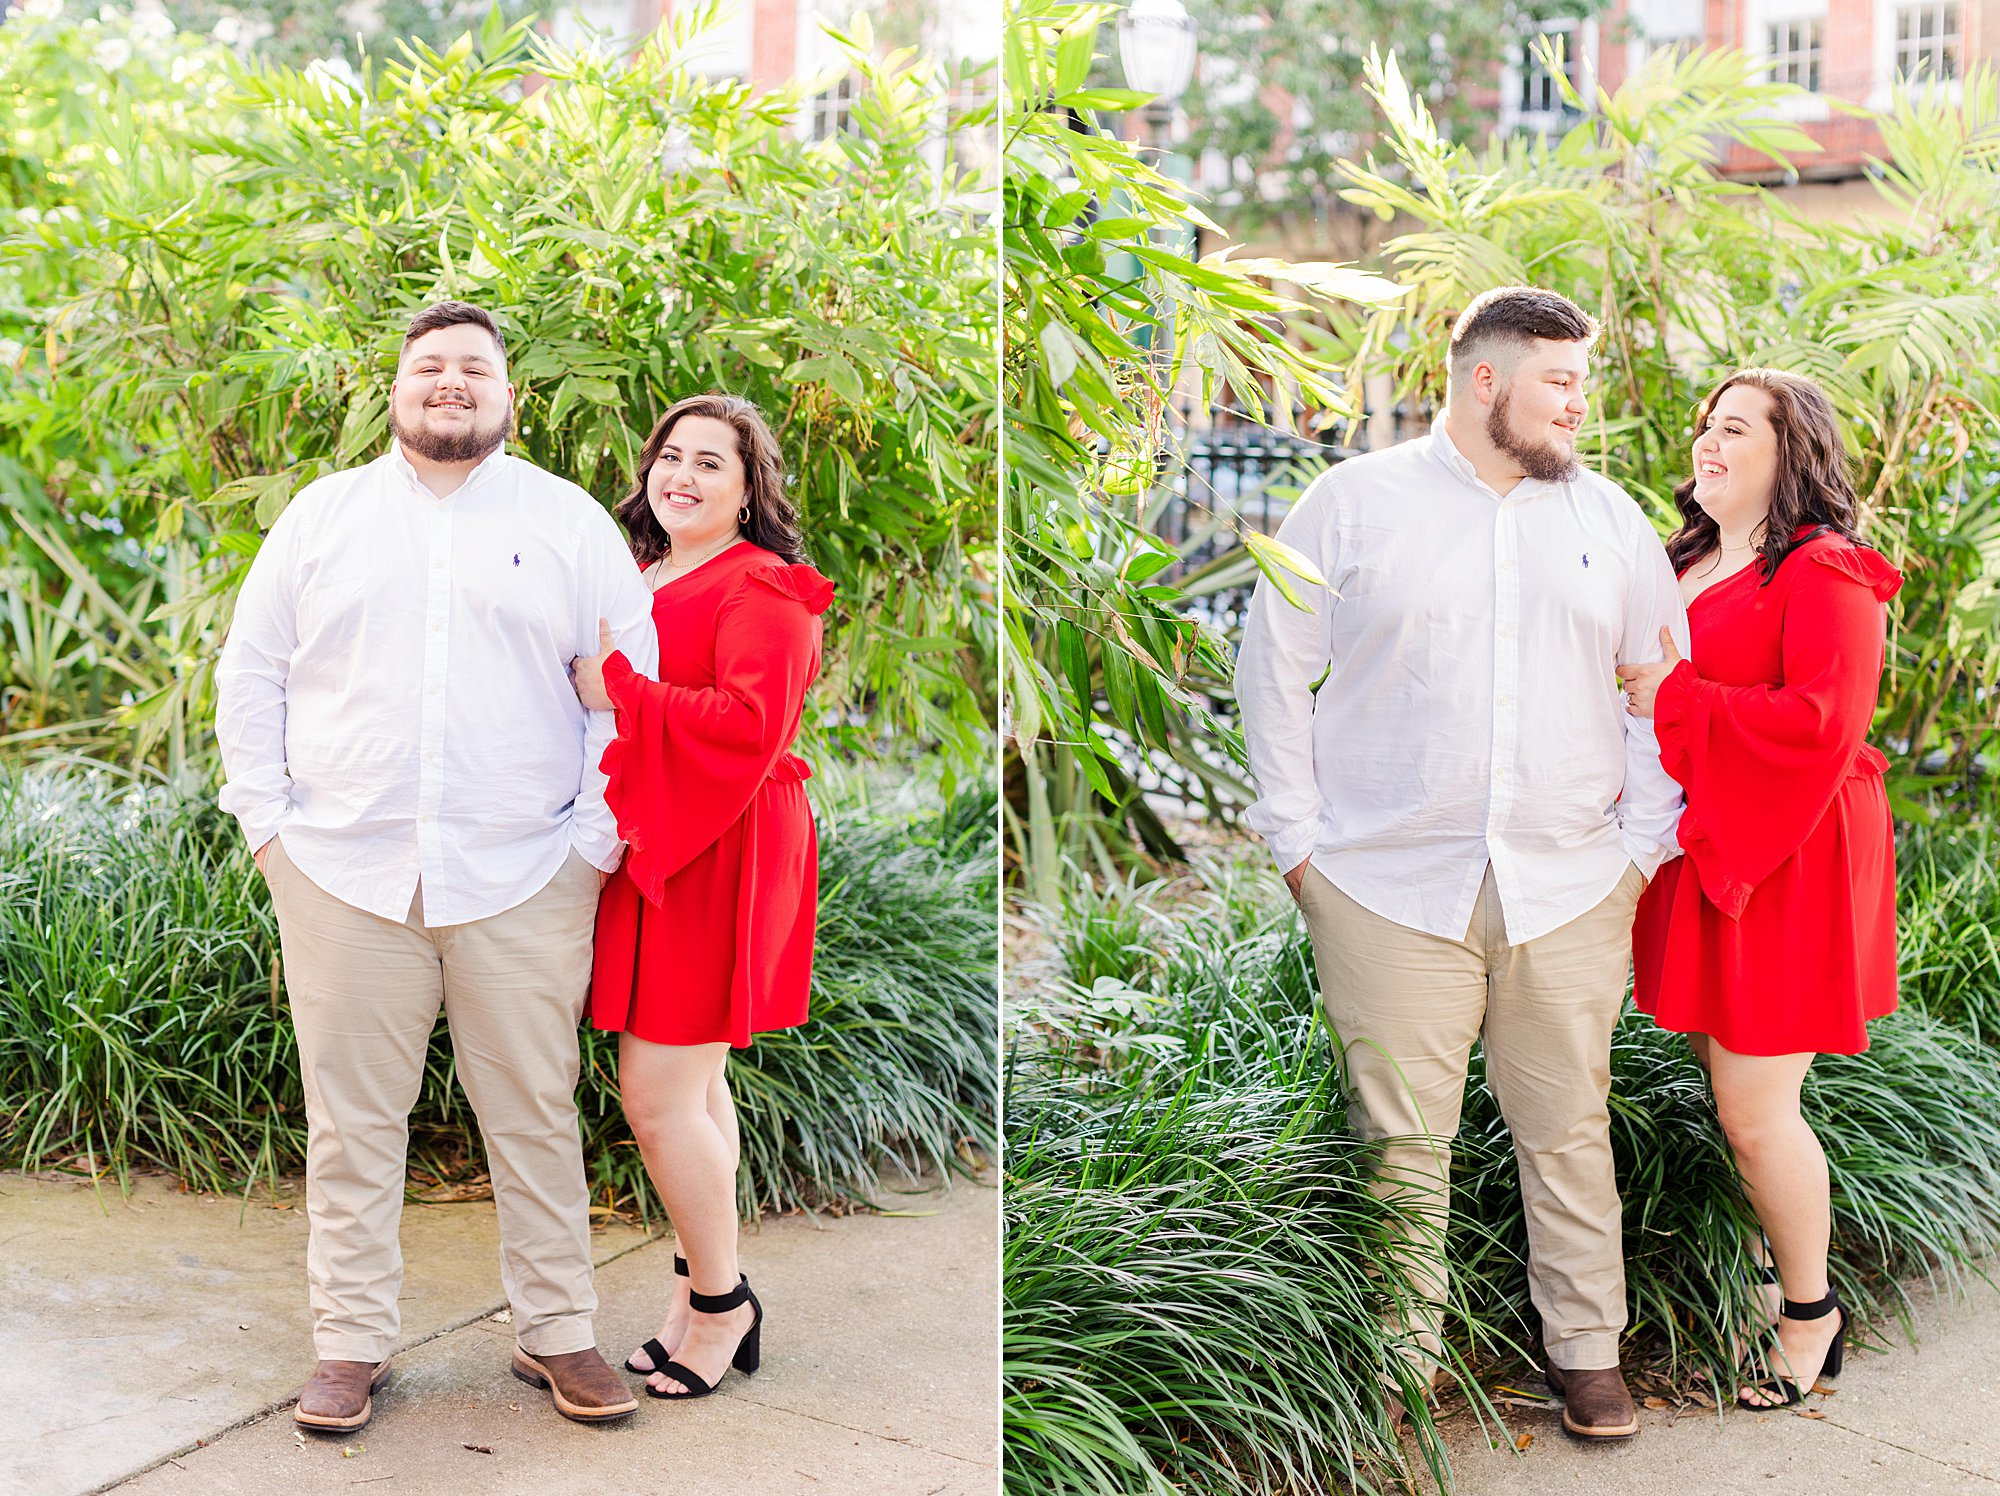 A Bride and Groom at their engagement session in Downtown Mobile, AL